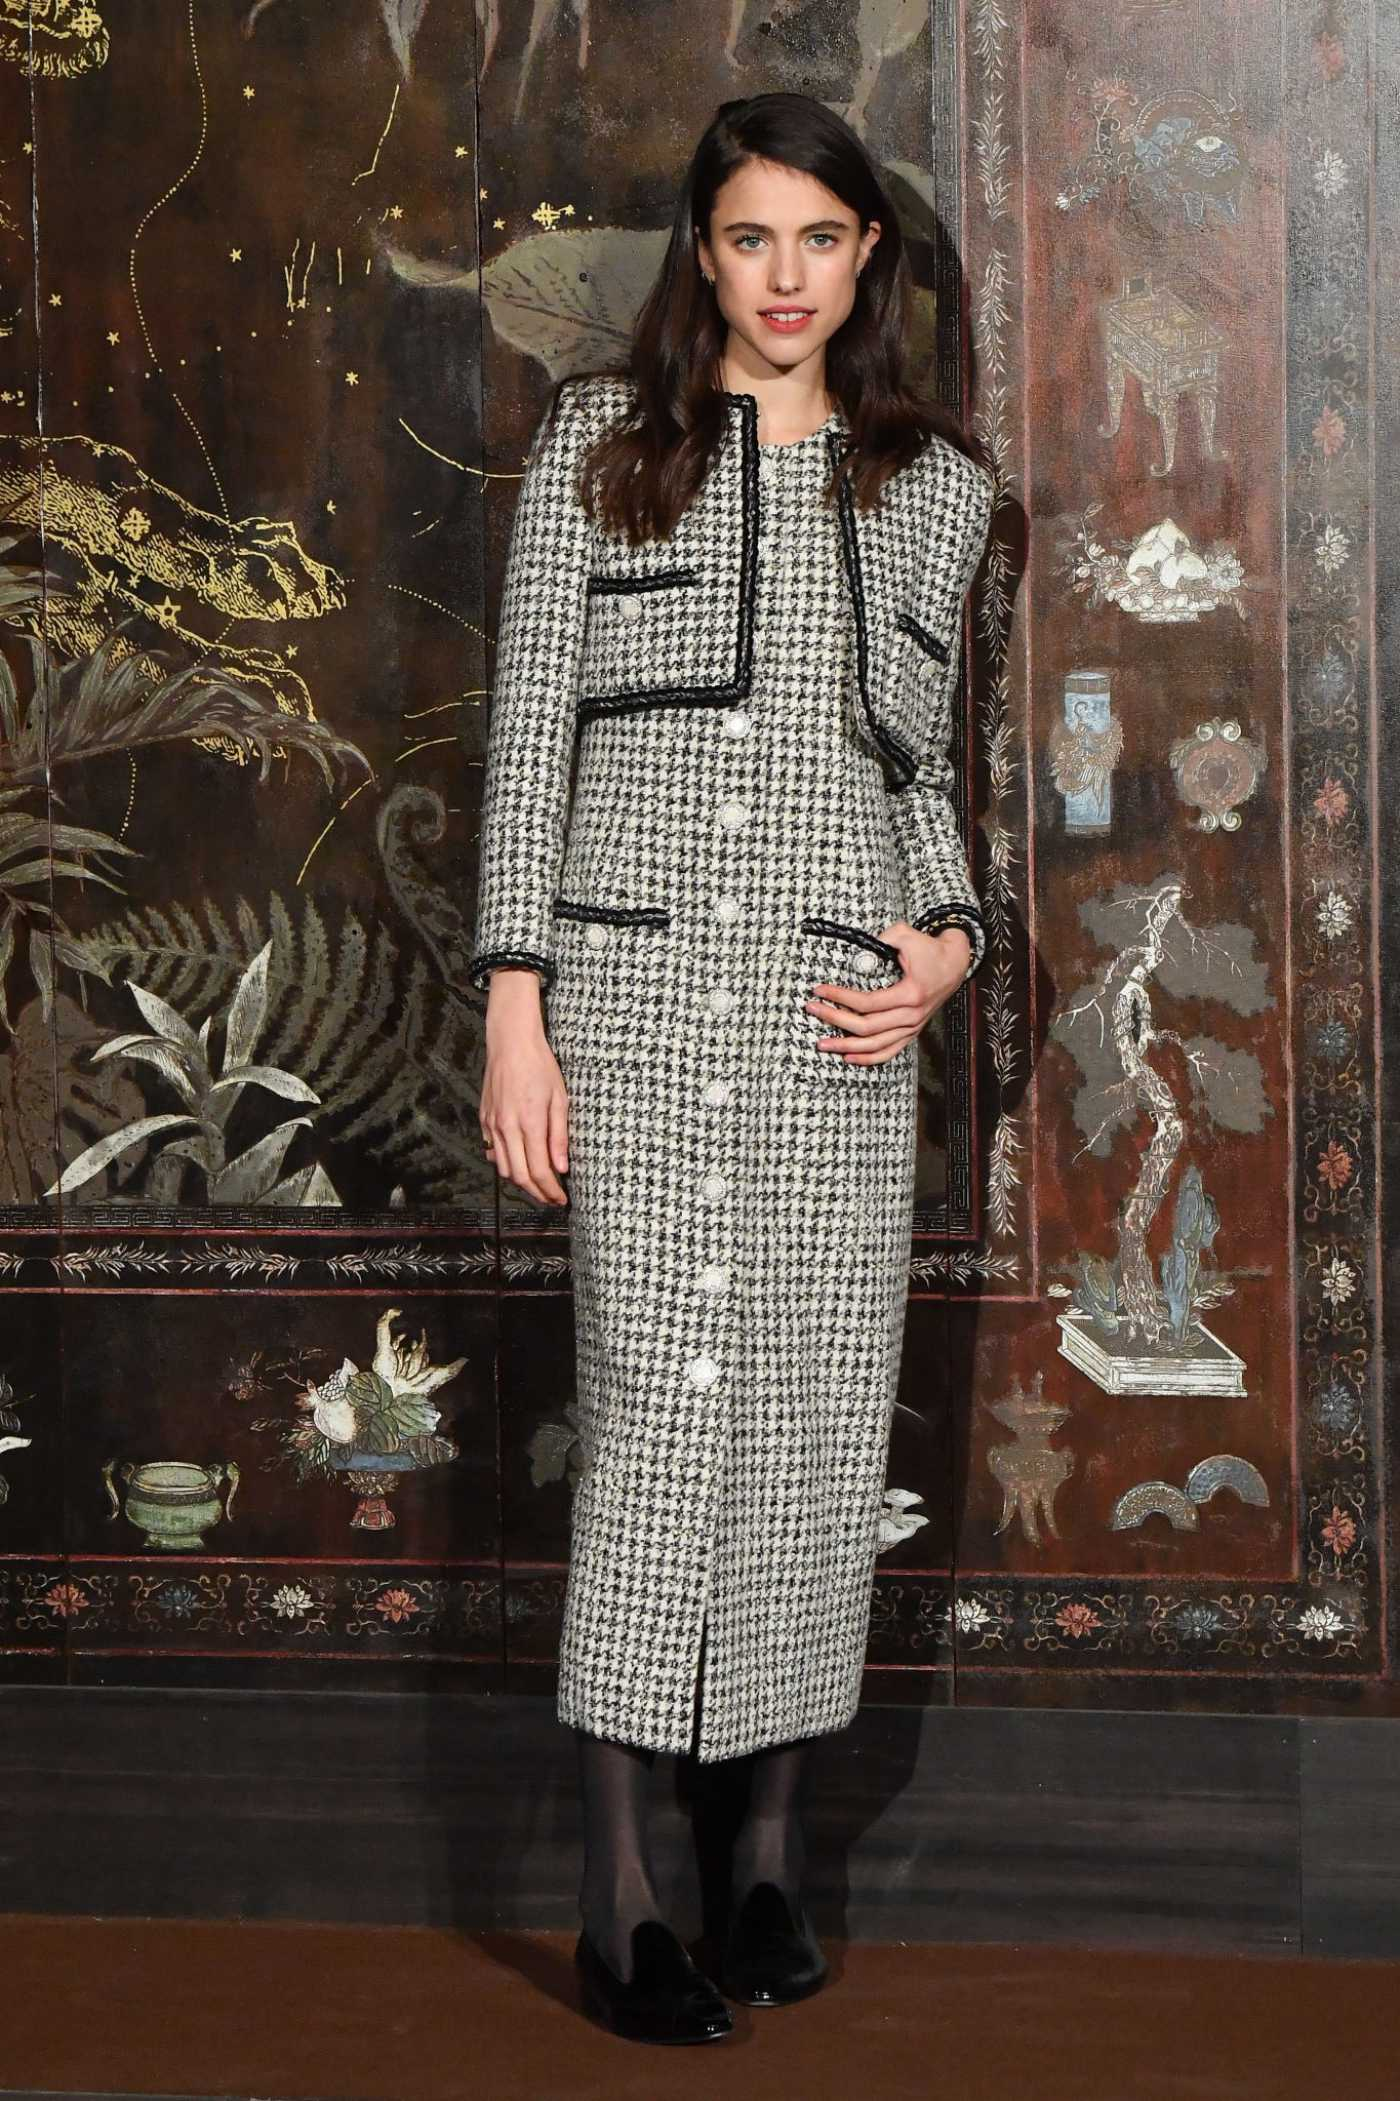 Margaret Qualley Attends 2019 Chanel Metiers D'Art Fashion Show at Le Grand Palais in Paris 12/04/2019